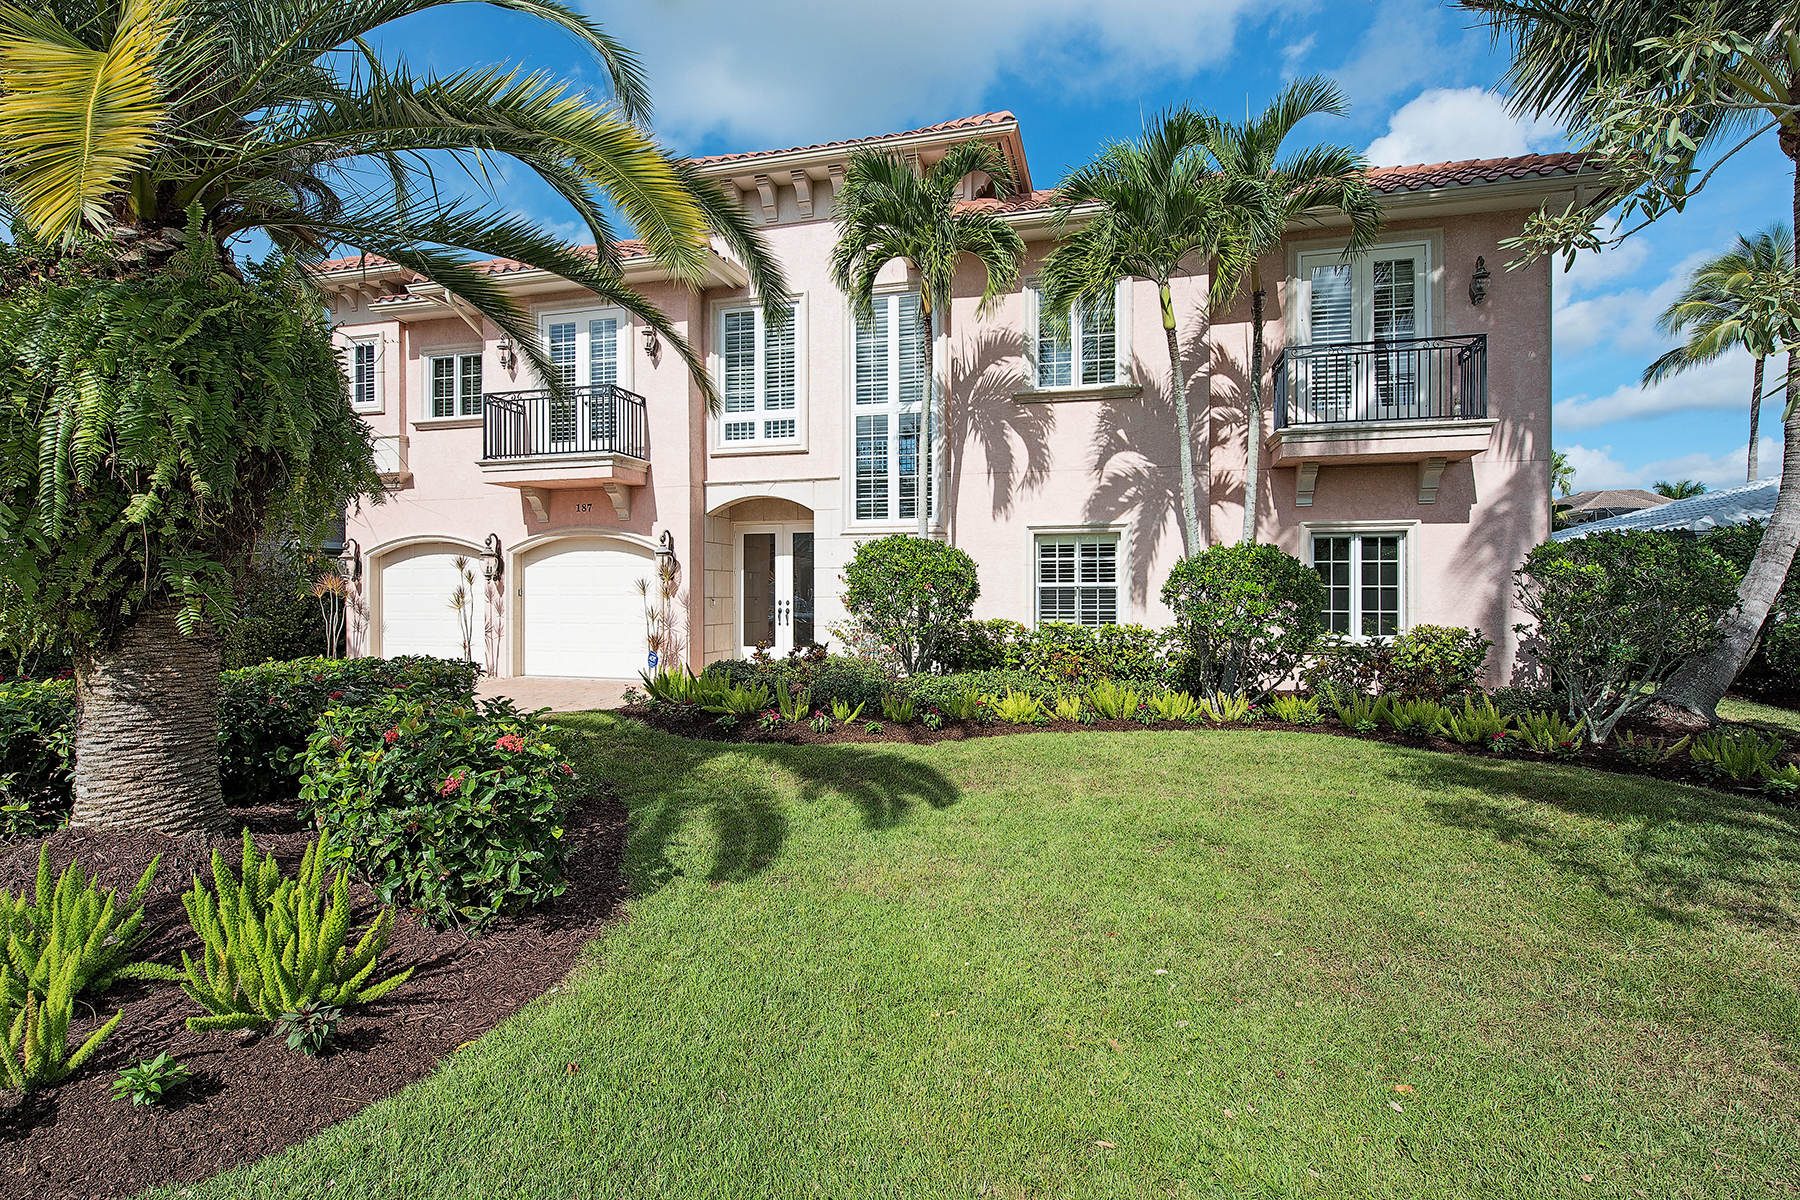 Single Family Home for Sale at VANDERBILT BEACH - CONNERS 187 Bayview Ave Naples, Florida 34108 United States